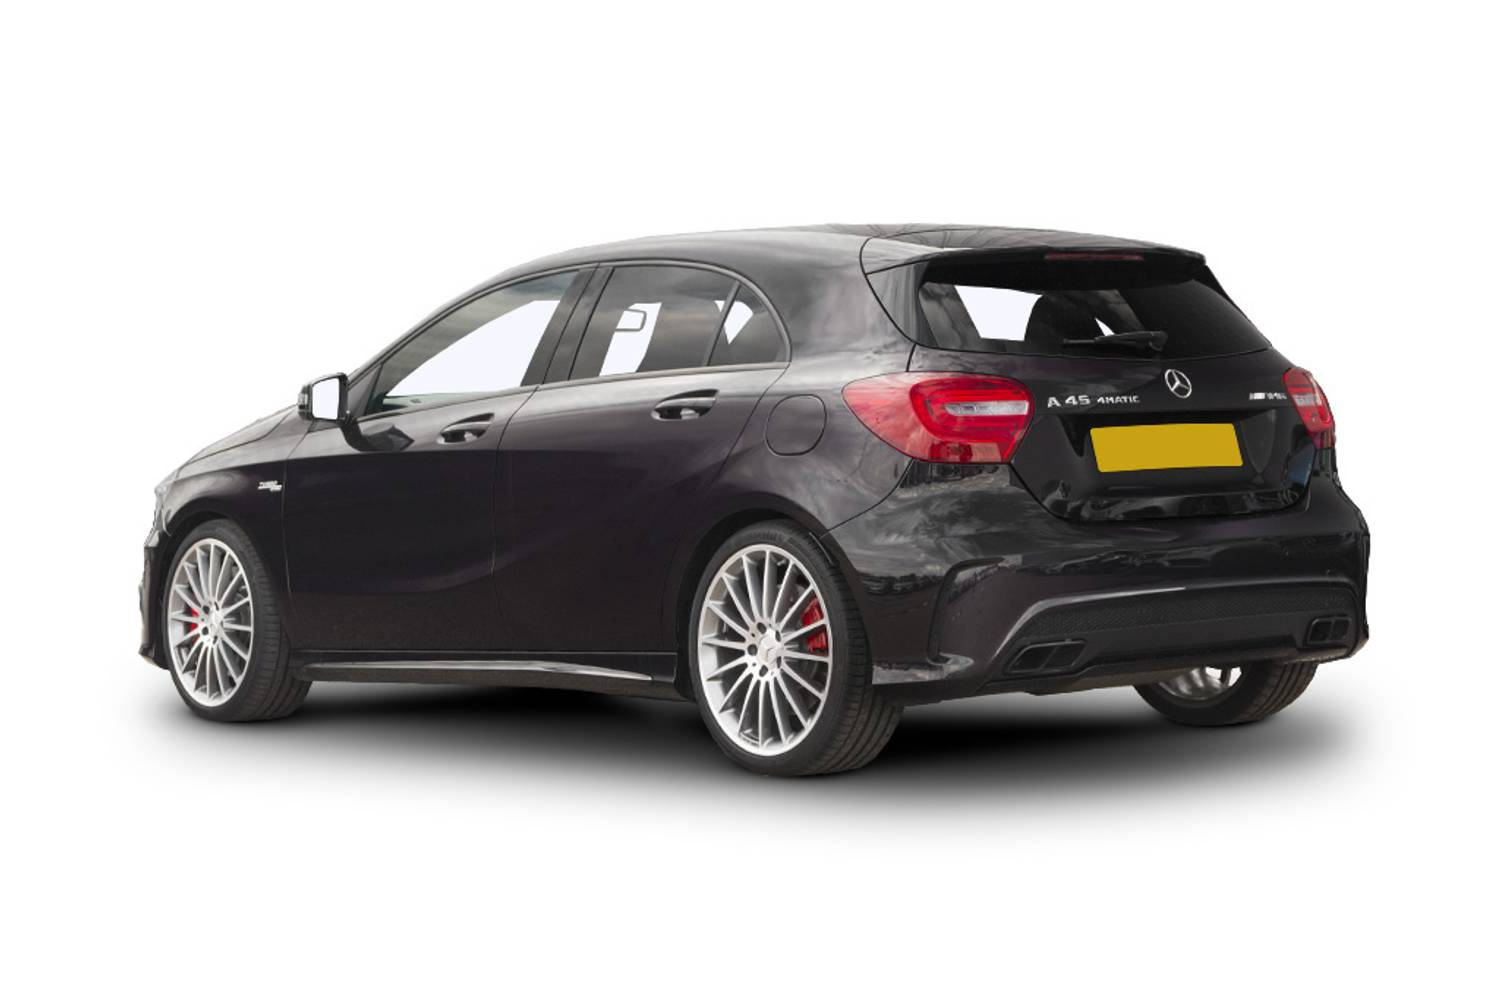 New Mercedes Benz A Class Amg Hatchback Special Editions